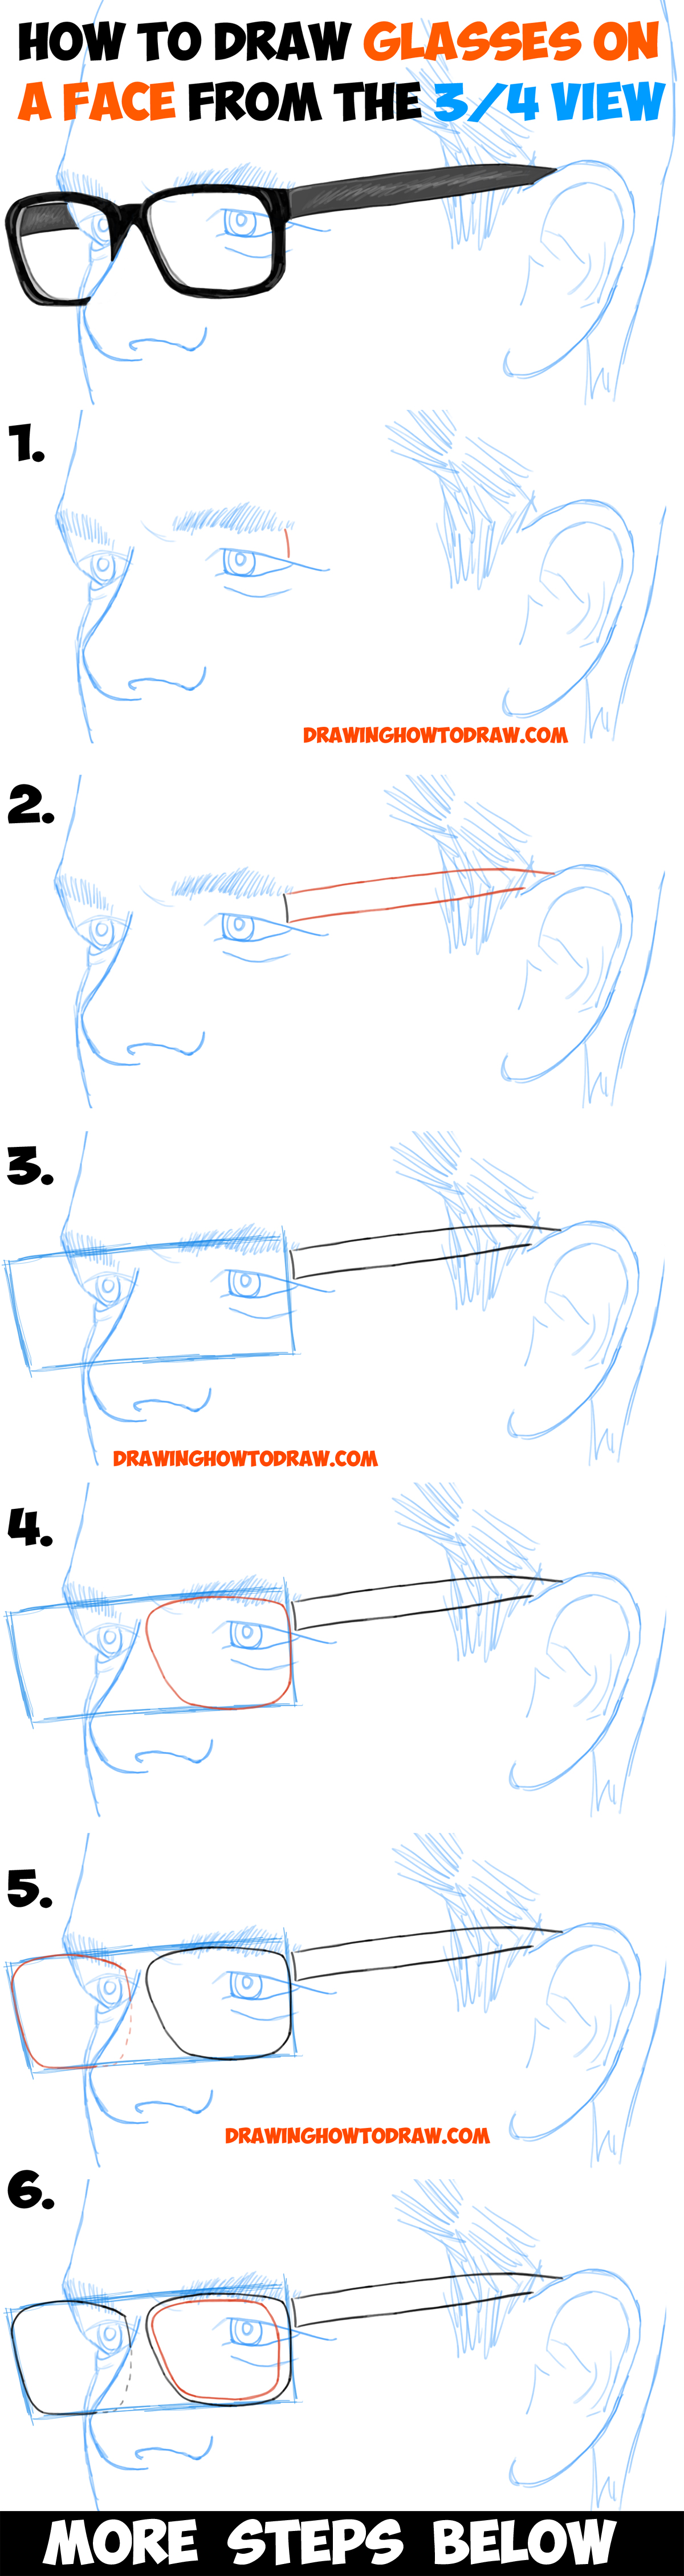 Learn How to Draw Glasses on a Man's Face from the 3/4 View (Three Quarters Angle)